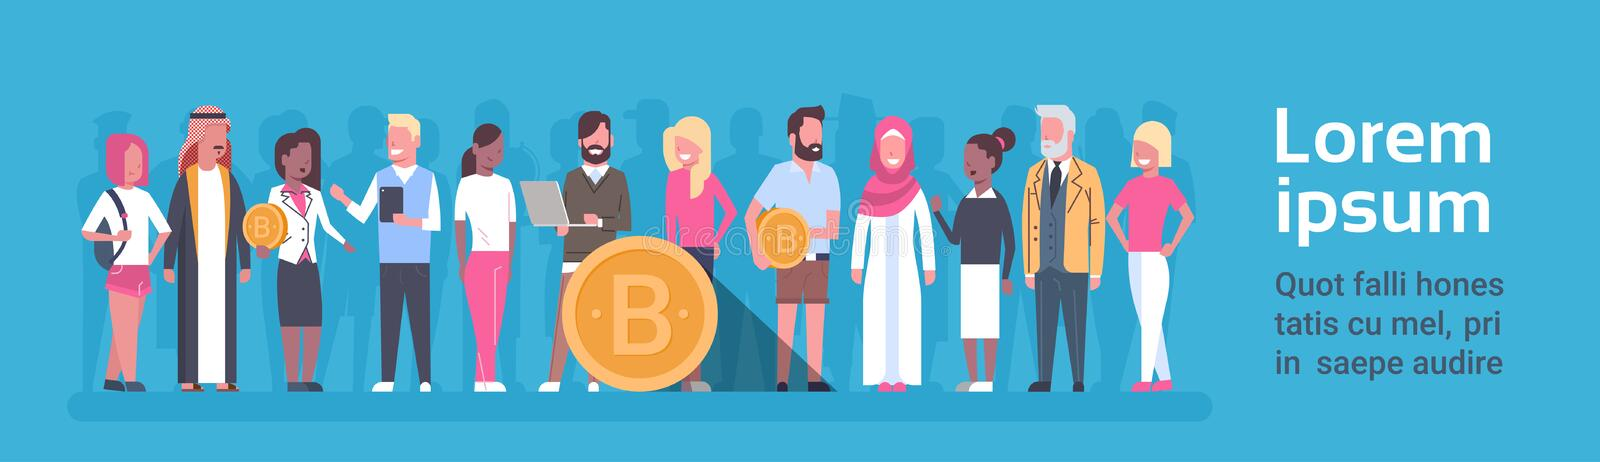 Group Of People Holding Golden Bitcoin Horizontal Banner Modern Web Money Digital Crypto Currency Concept royalty free illustration